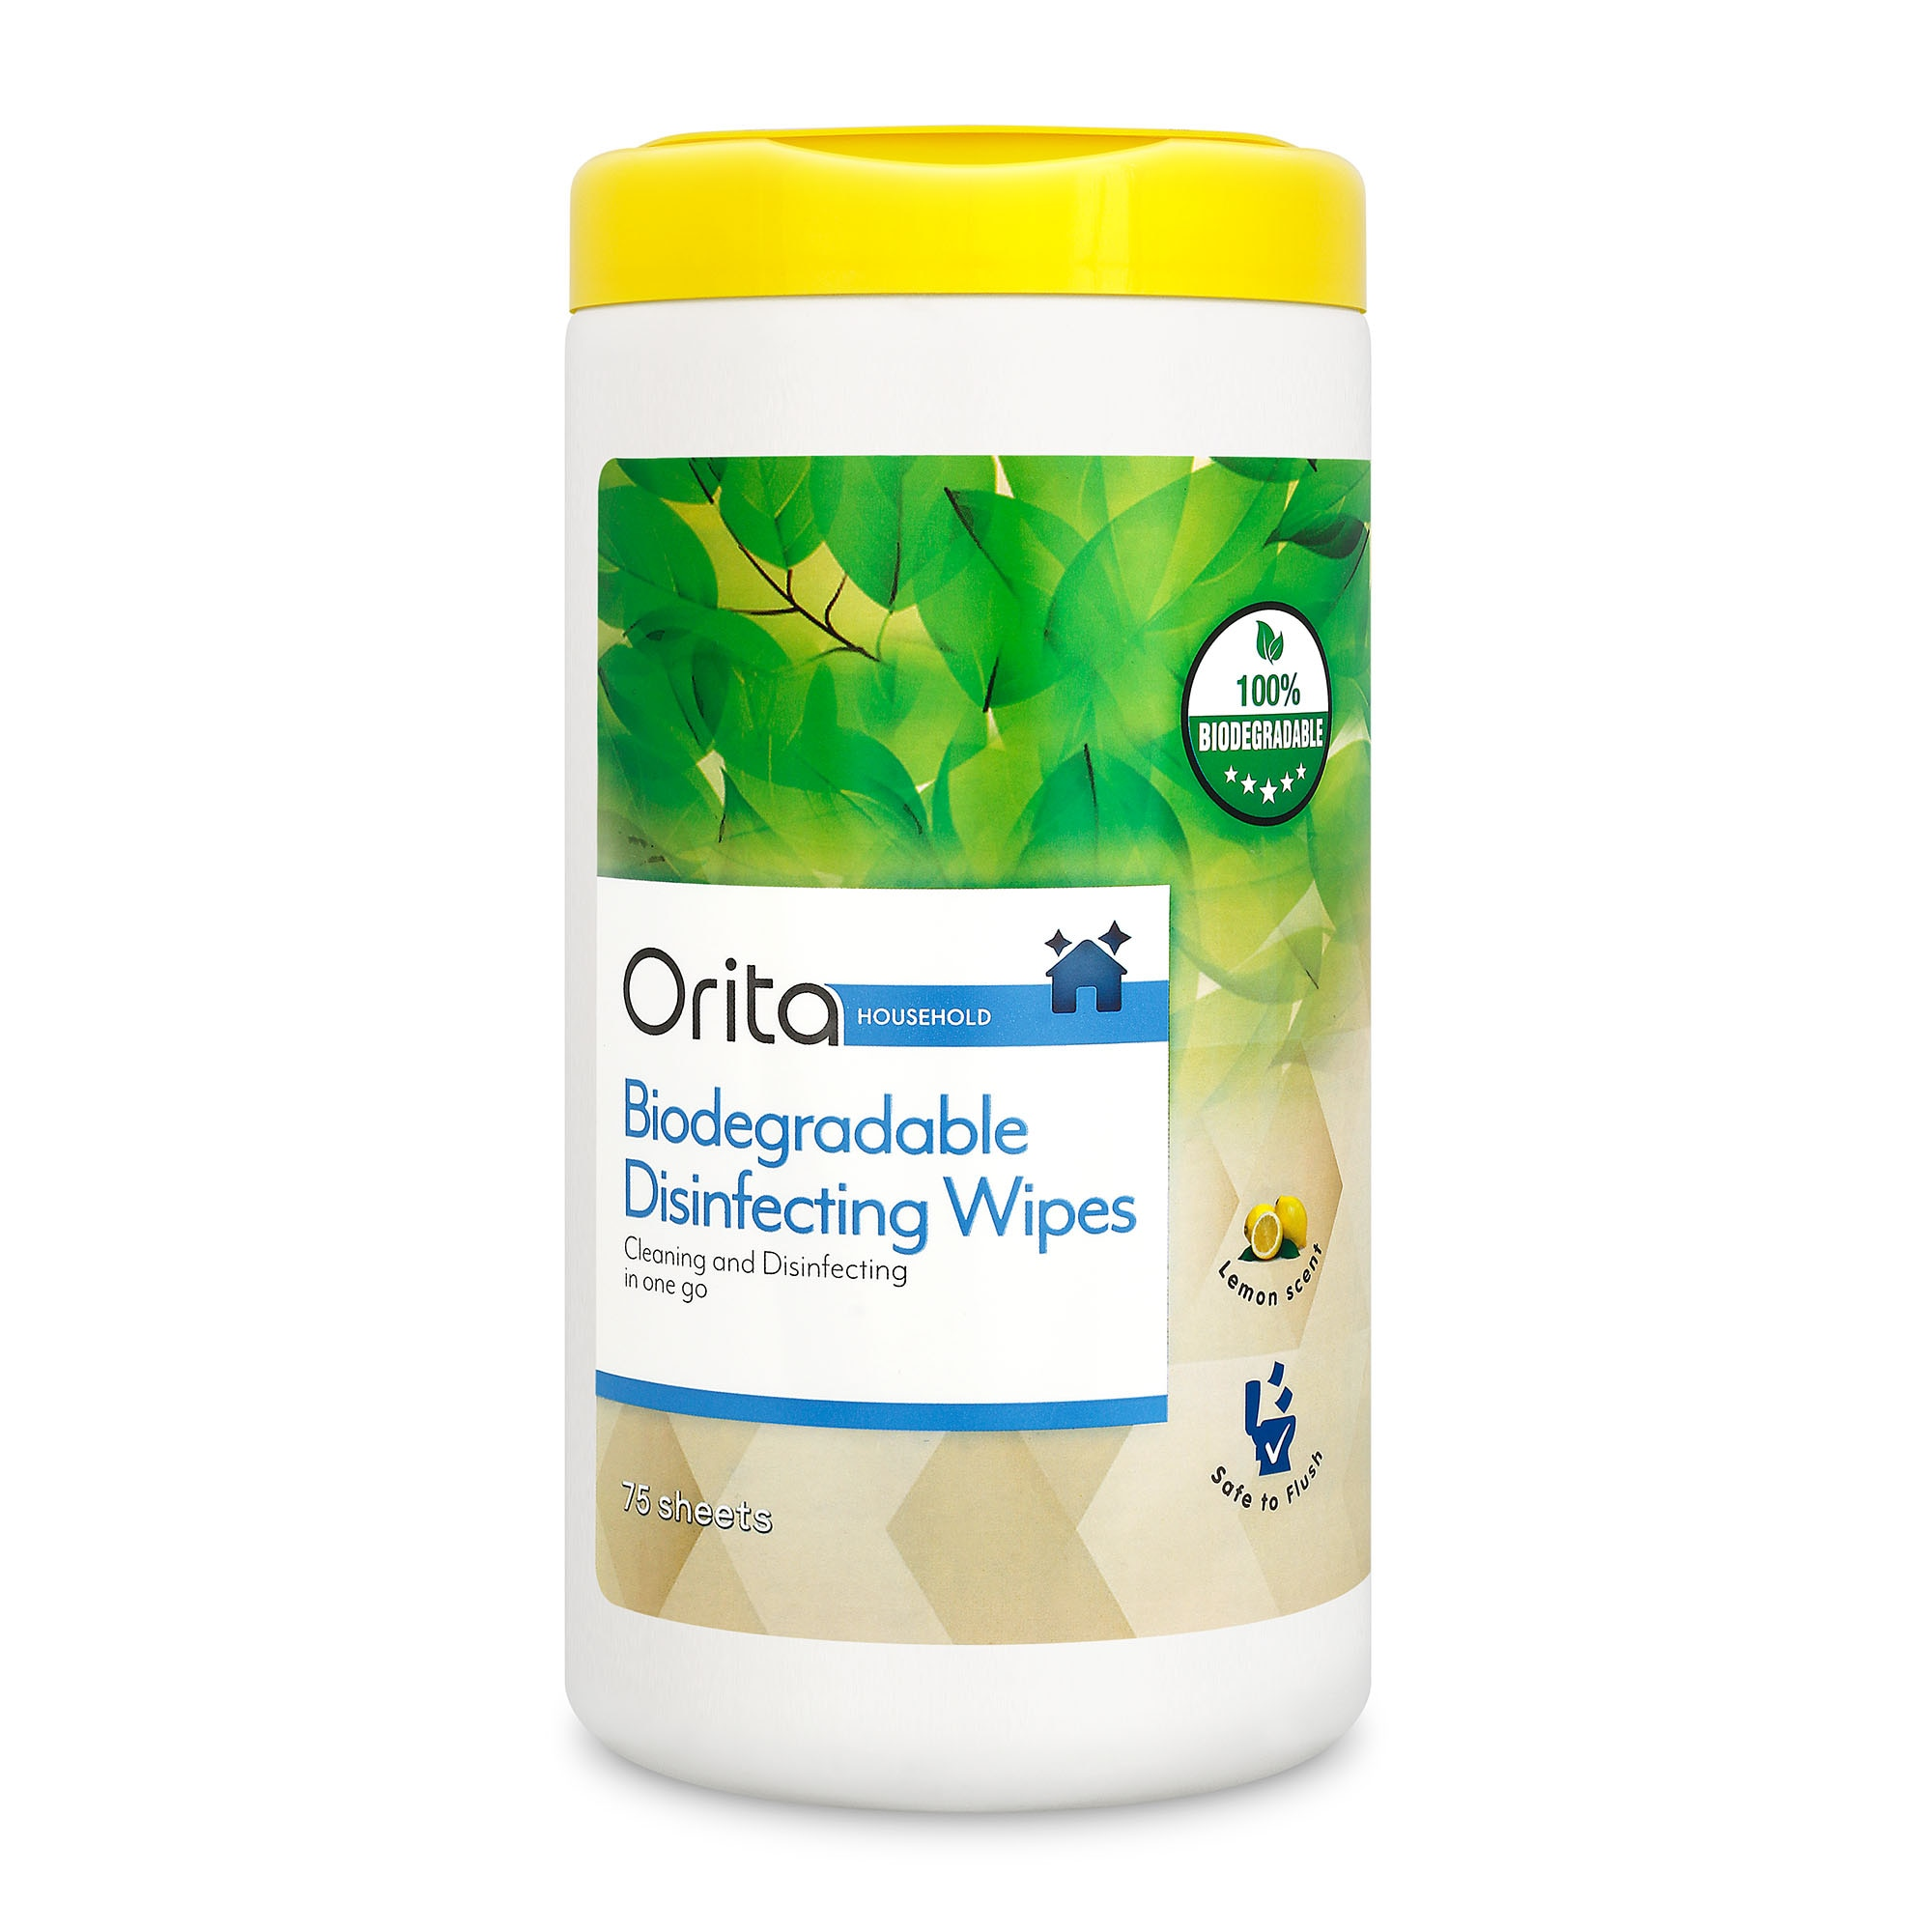 ORITABiodegradable Disinfecting Wipes Lemon Scent 75 wipes,Alcohol and DisinfectantAll Must Go Sale